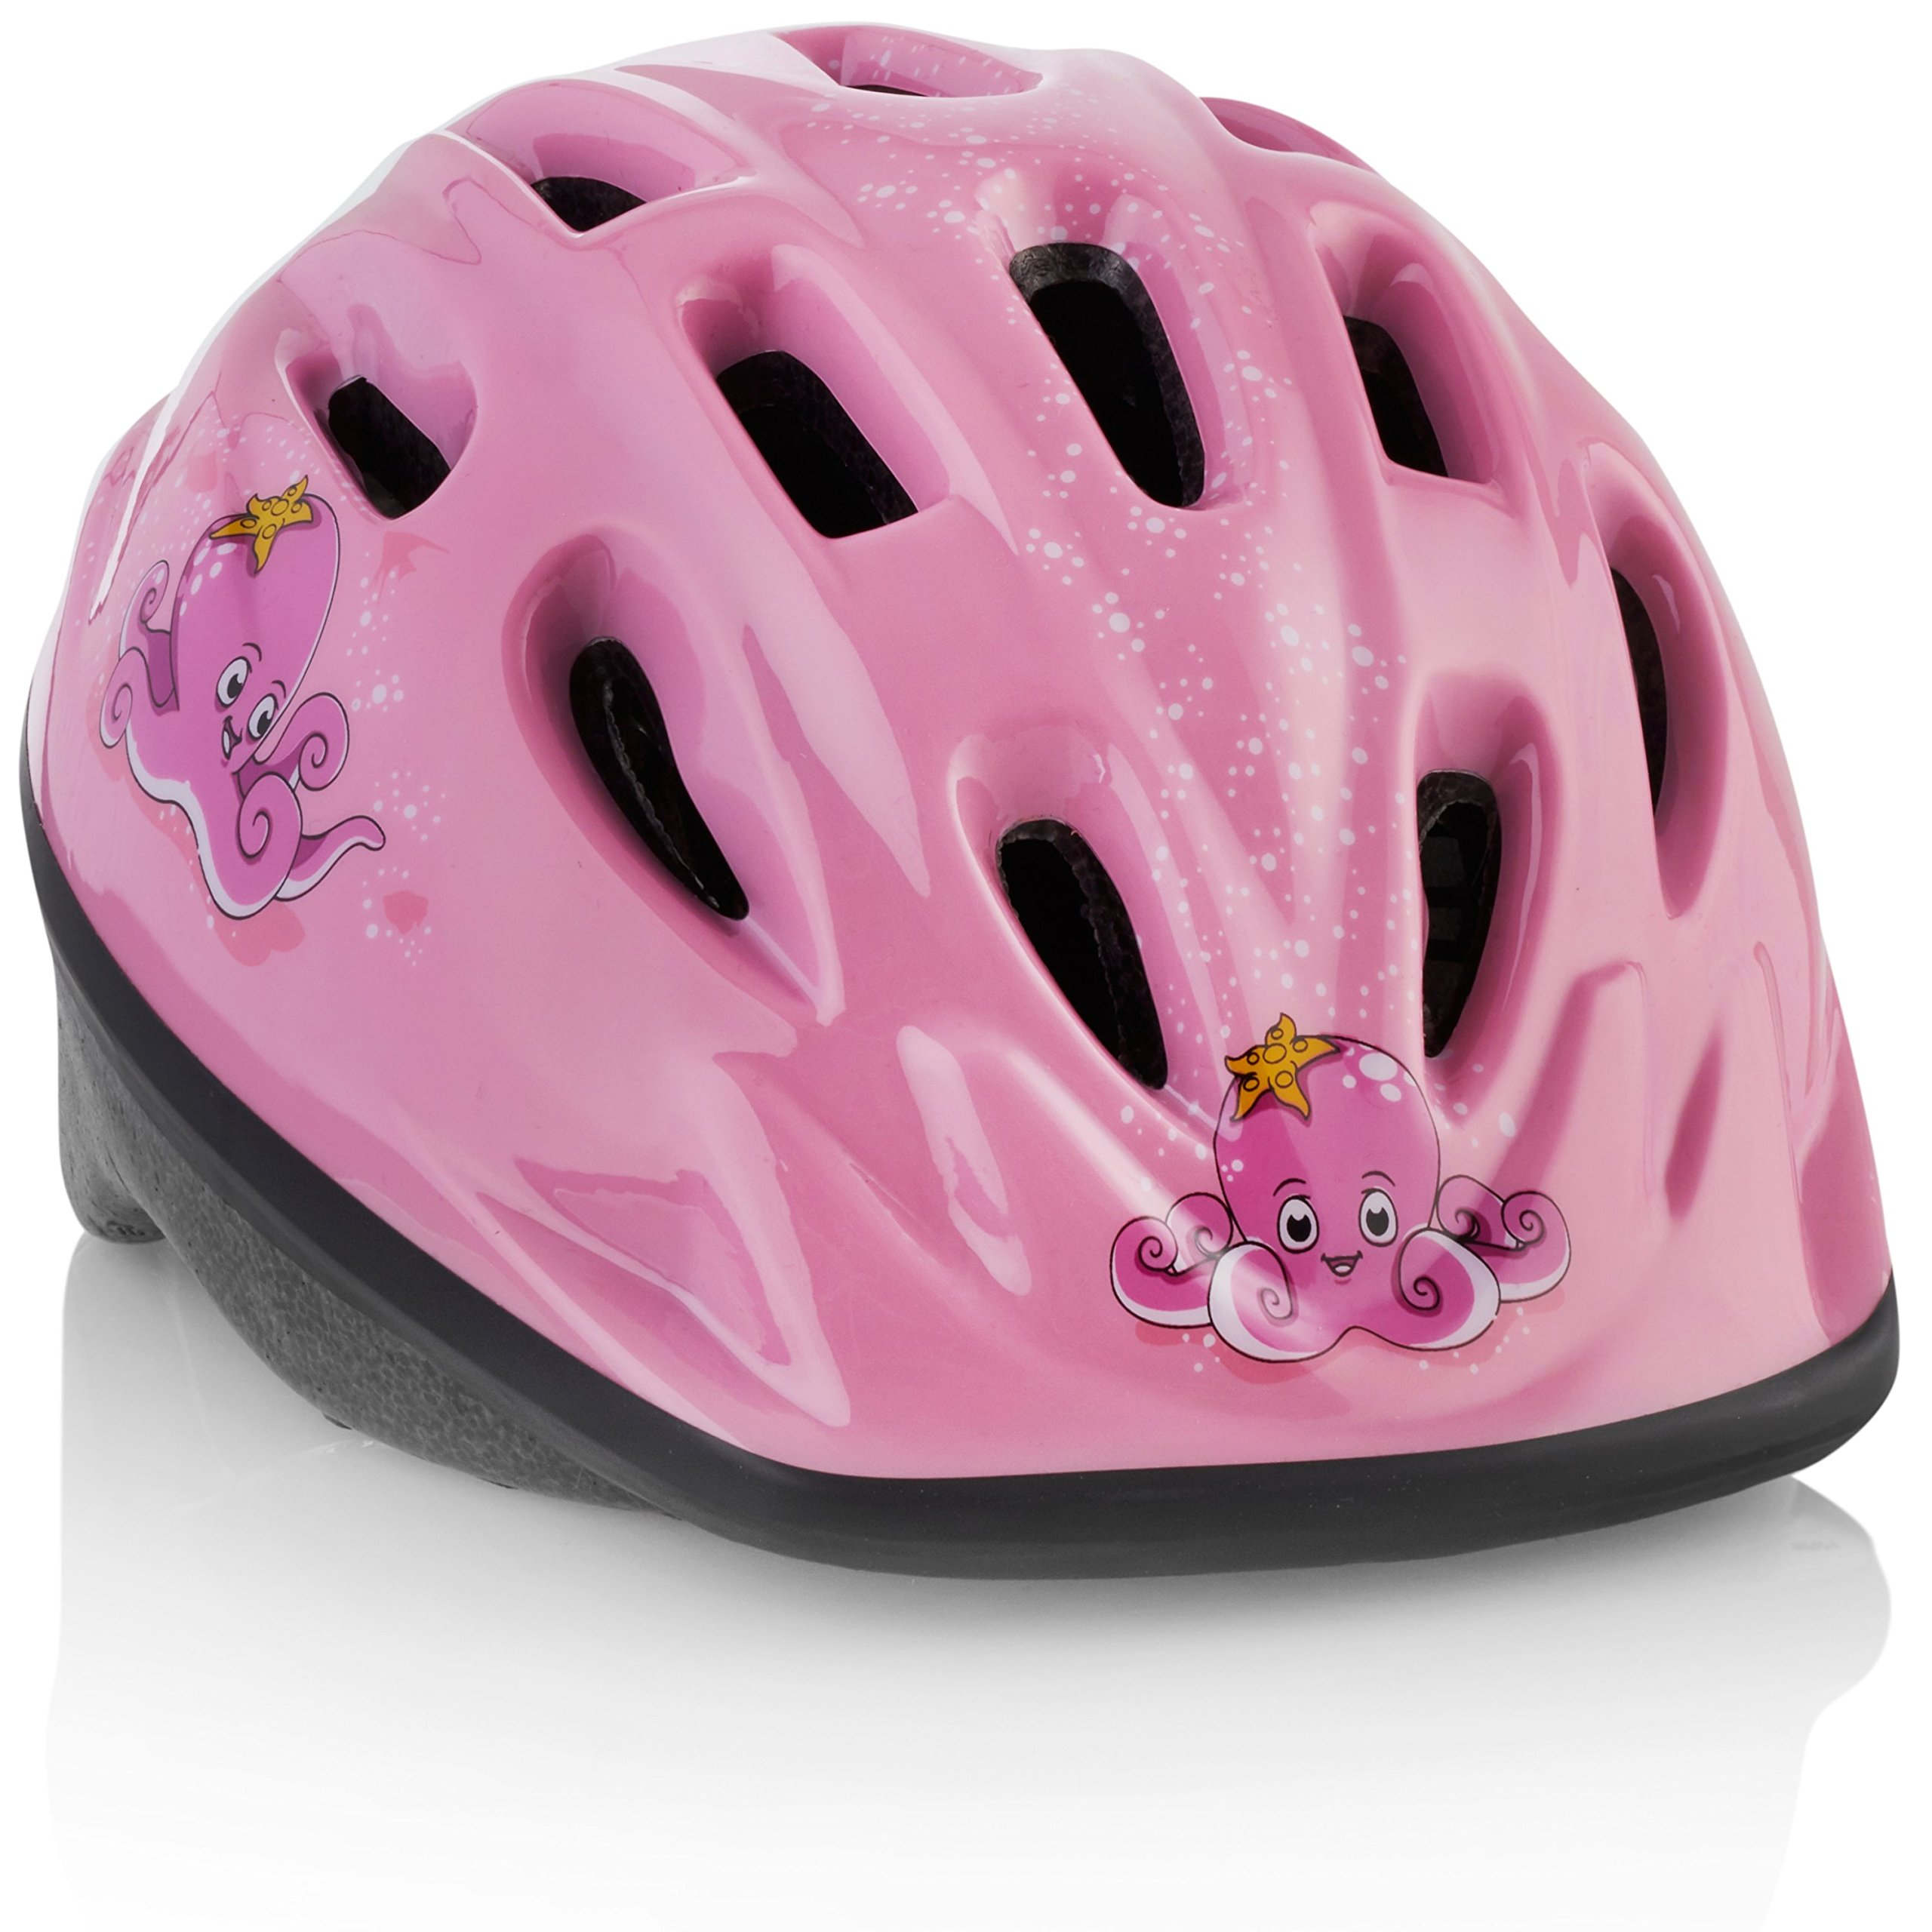 TeamObsidian Kids Bike Helmet [ Pink Octopus ] - Adjustable from Toddler to Youth Size, Ages 3-7 - Durable Kid Bicycle Helmets with Fun Aquatic Design Girls Will Love - CPSC Certified - FunWave by TeamObsidian